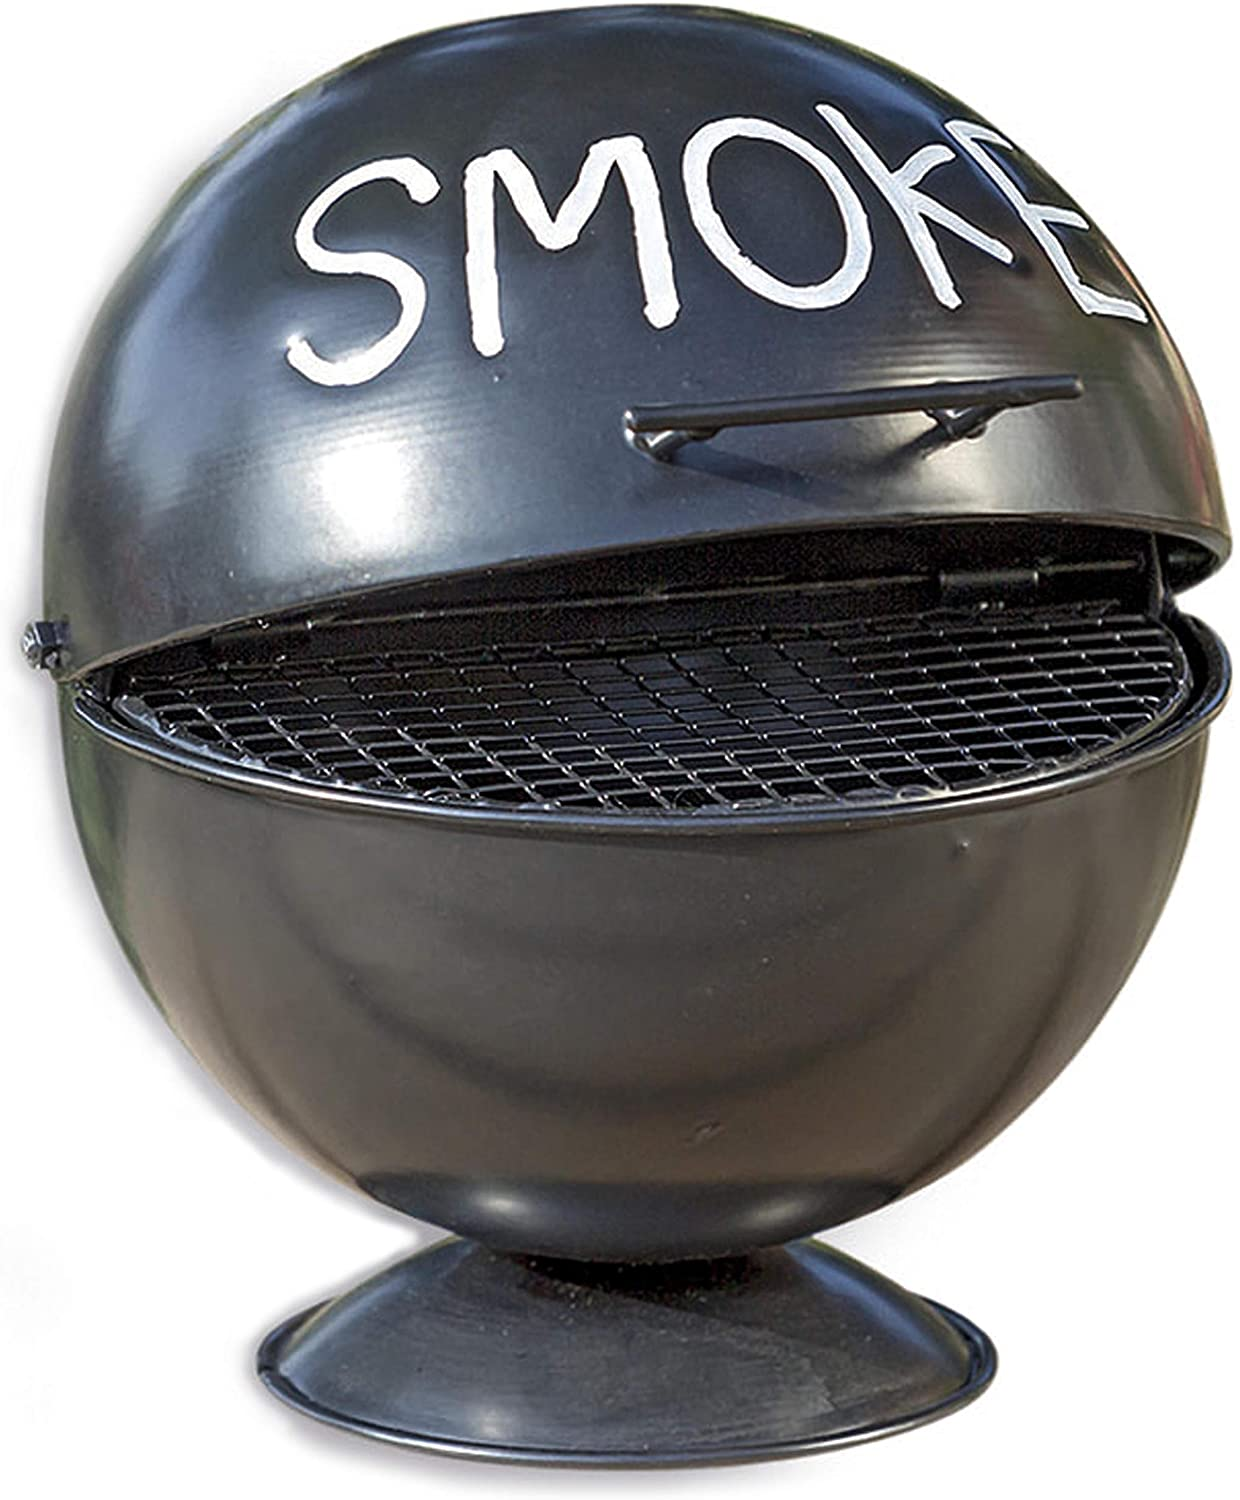 WHW Whole House Worlds Smoke Ashtray, Lidded Dome, Pedestal Base, BBQ Grill Party Style, Black Lacquered Iron, 6 Inches